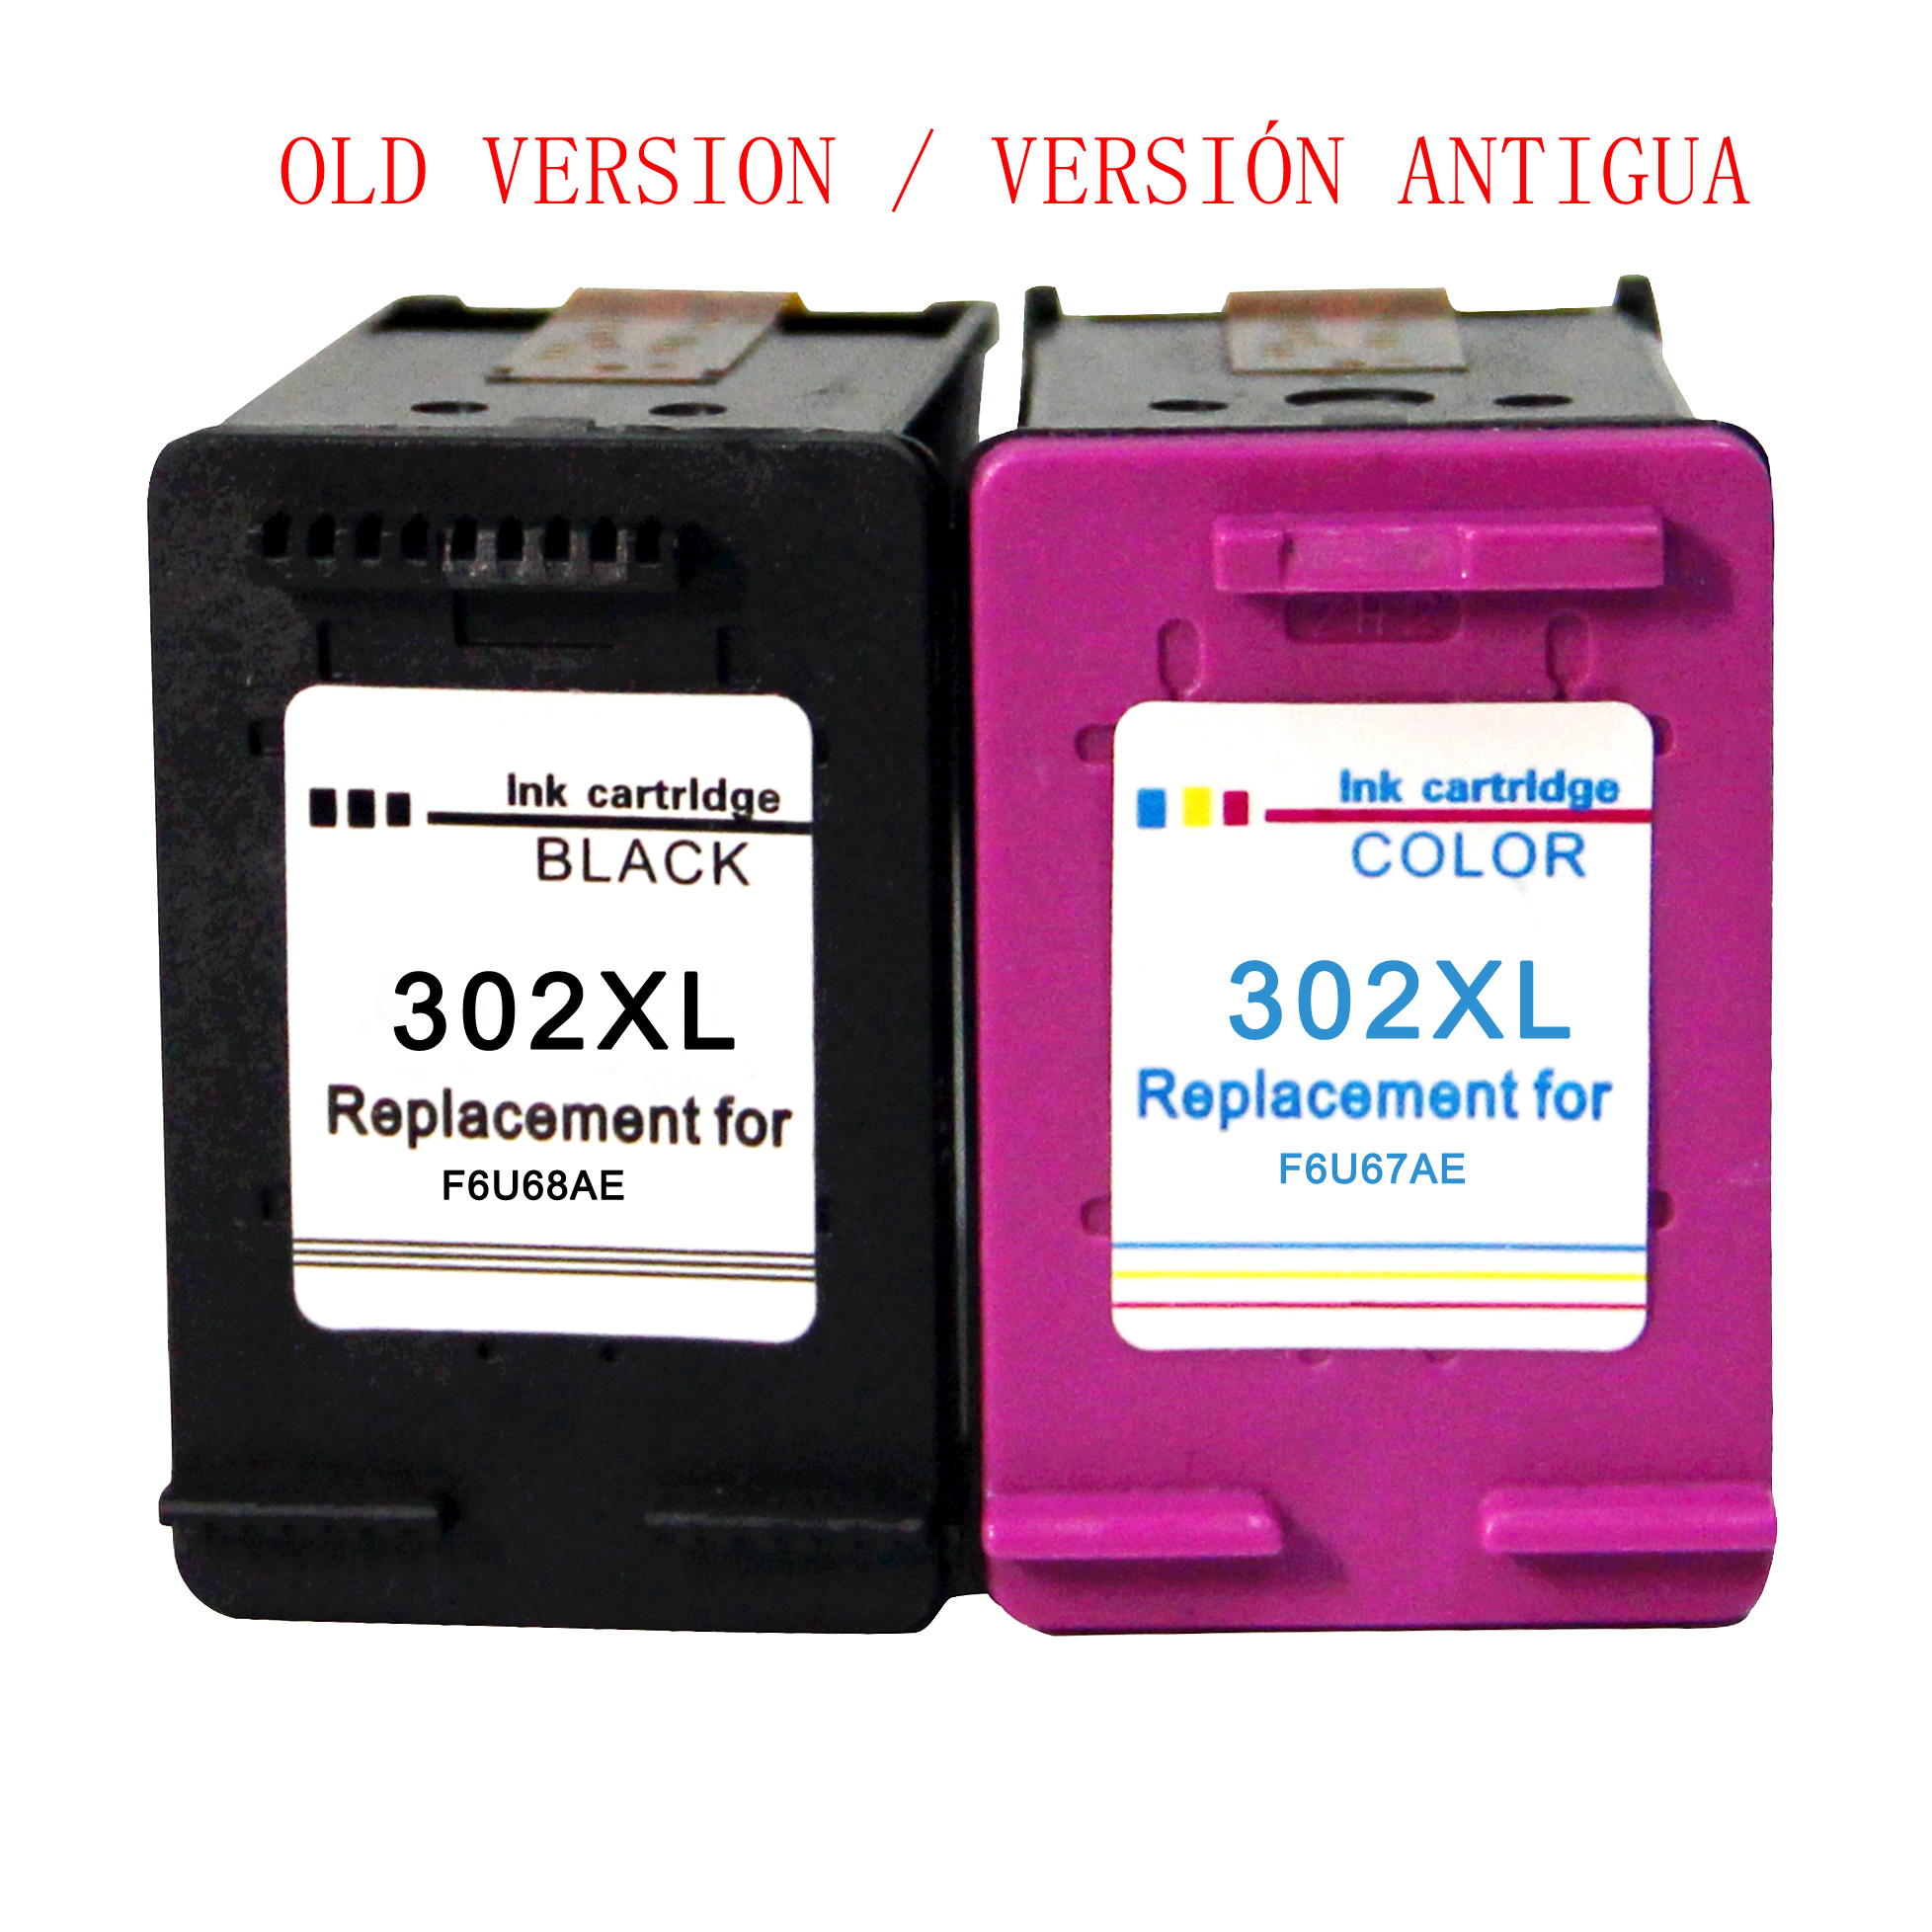 Compatible 302XL ink cartridge for <font><b>HP</b></font> 302 XL for hp302 For <font><b>HP</b></font> Deskjet 2130 2135 1110 <font><b>3630</b></font> 3632 Officejet 3830 3834 4650 image